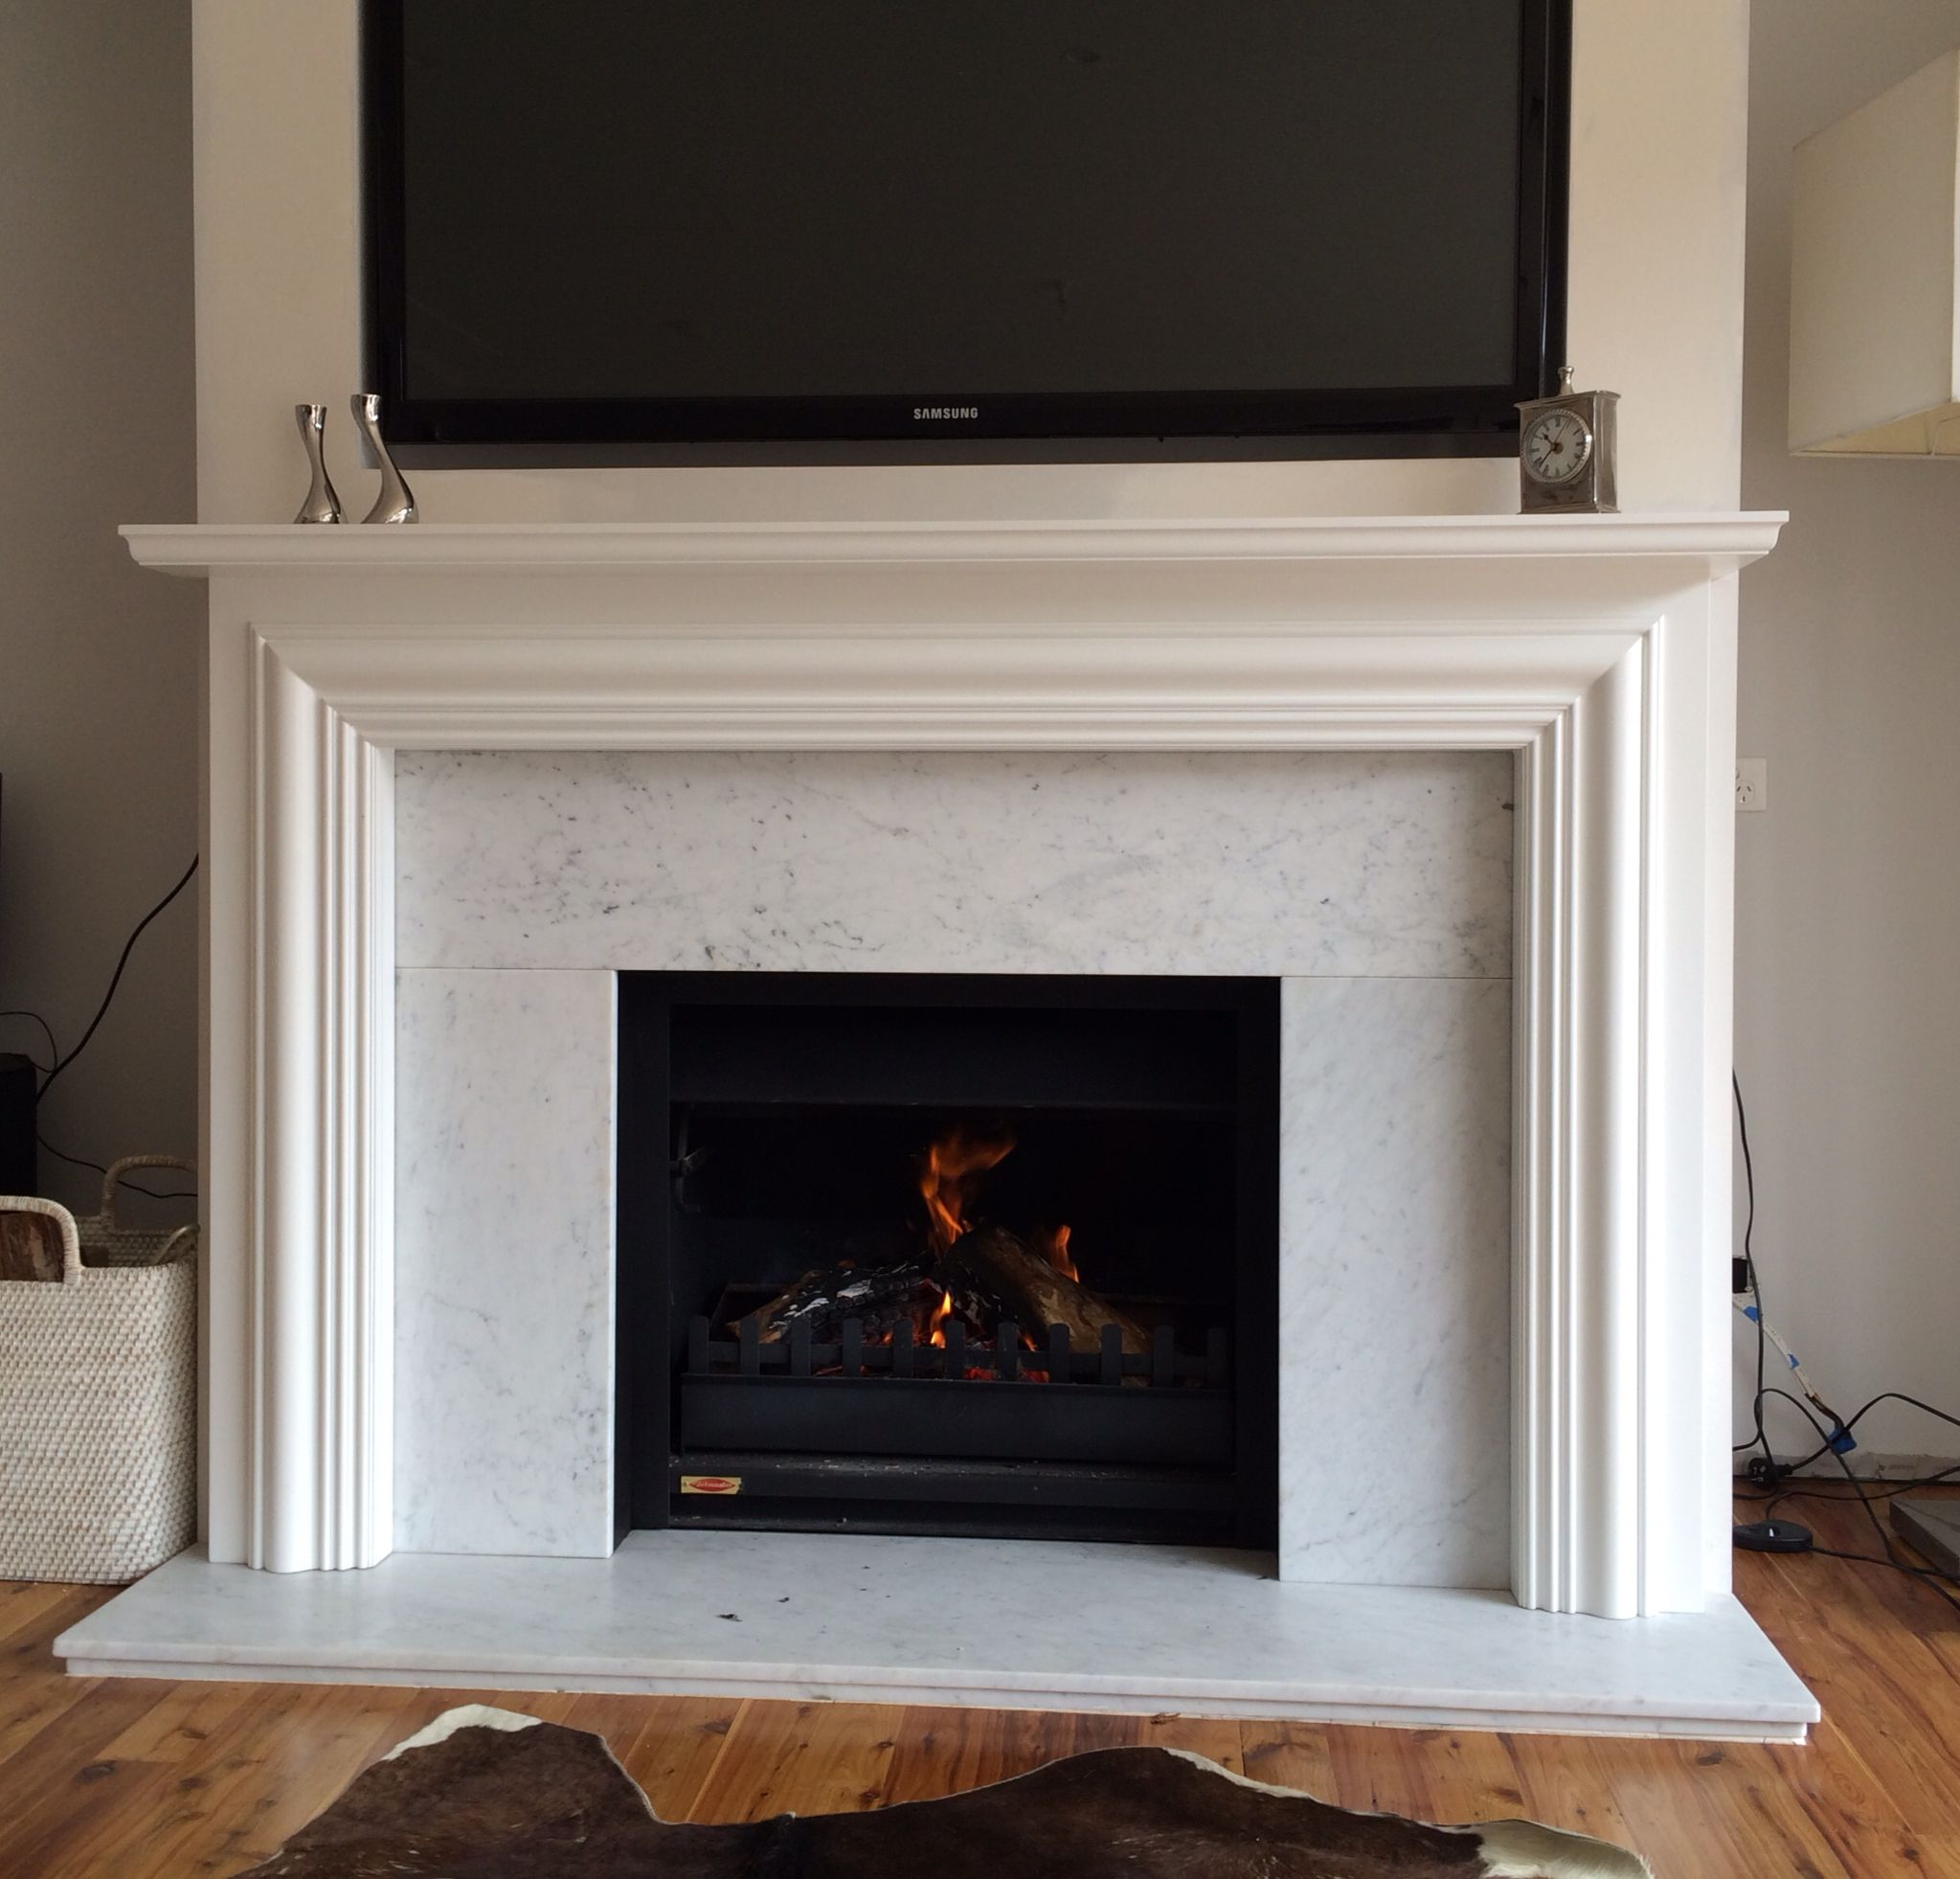 jet master traditional fireplace - Google Search | Place ...